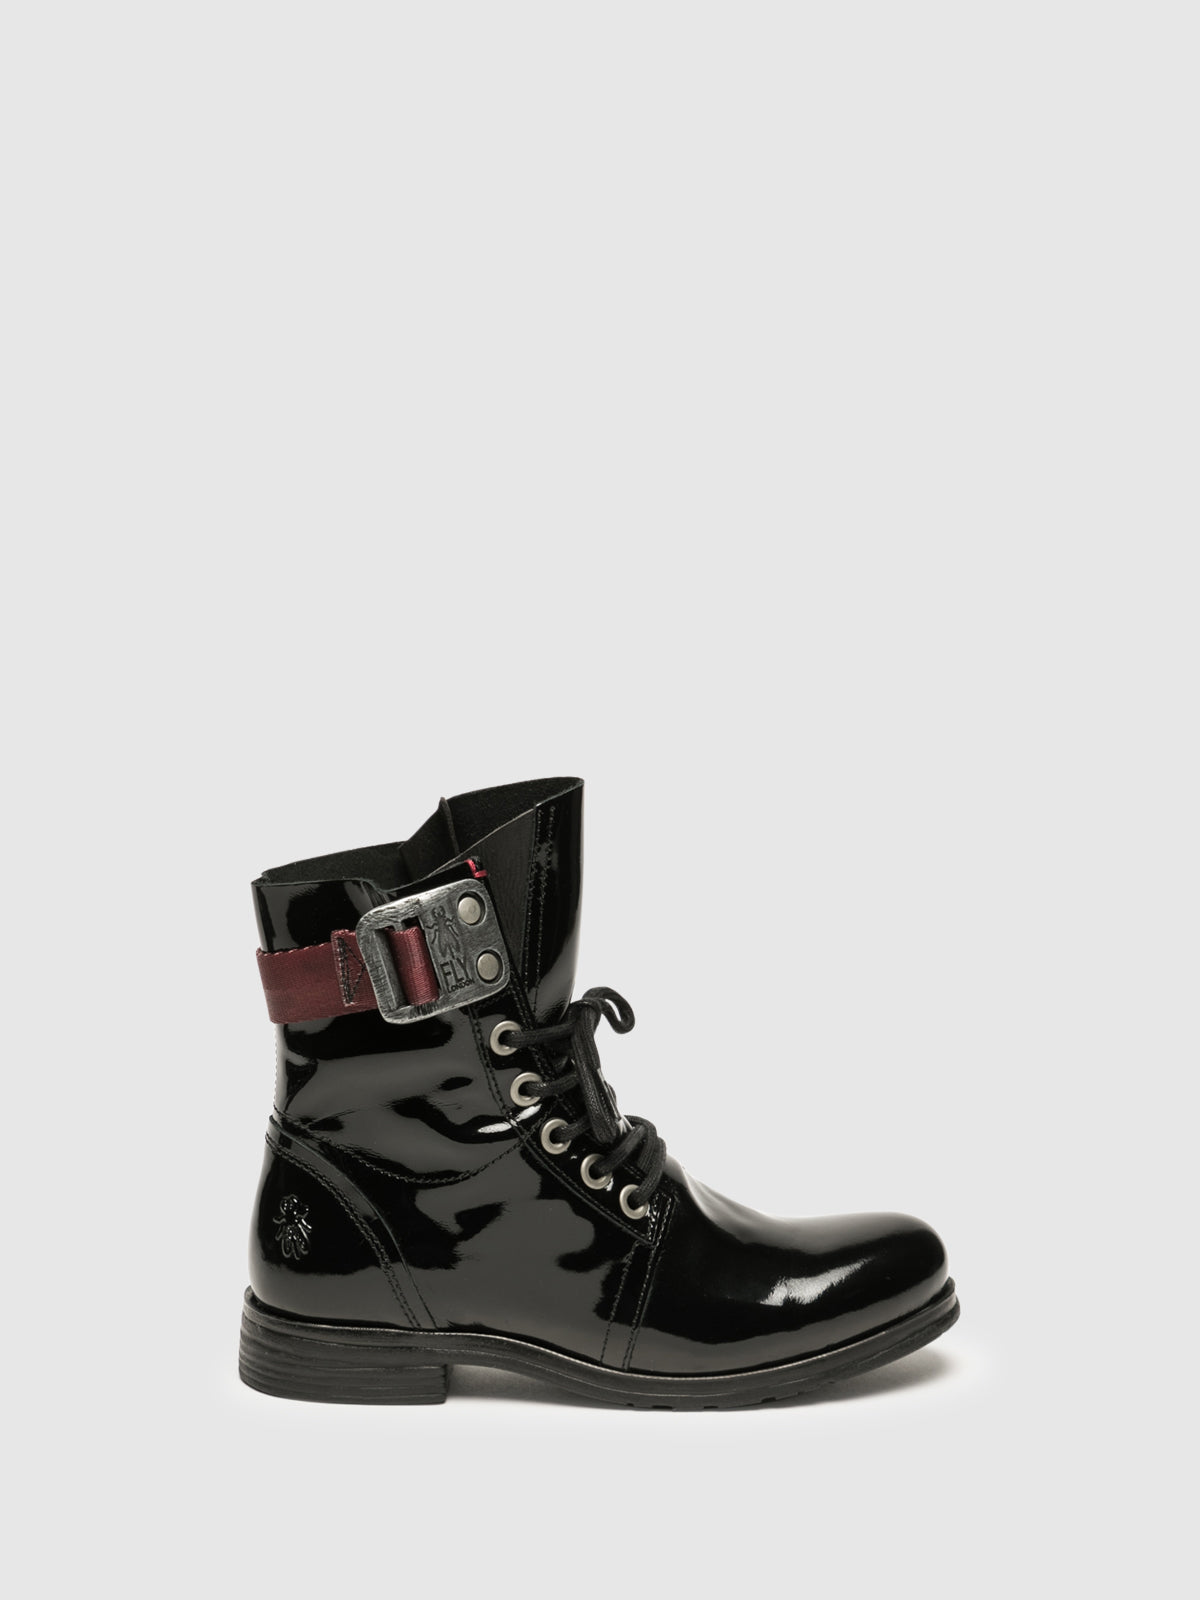 Fly London Matte Black Lace-up Ankle Boots